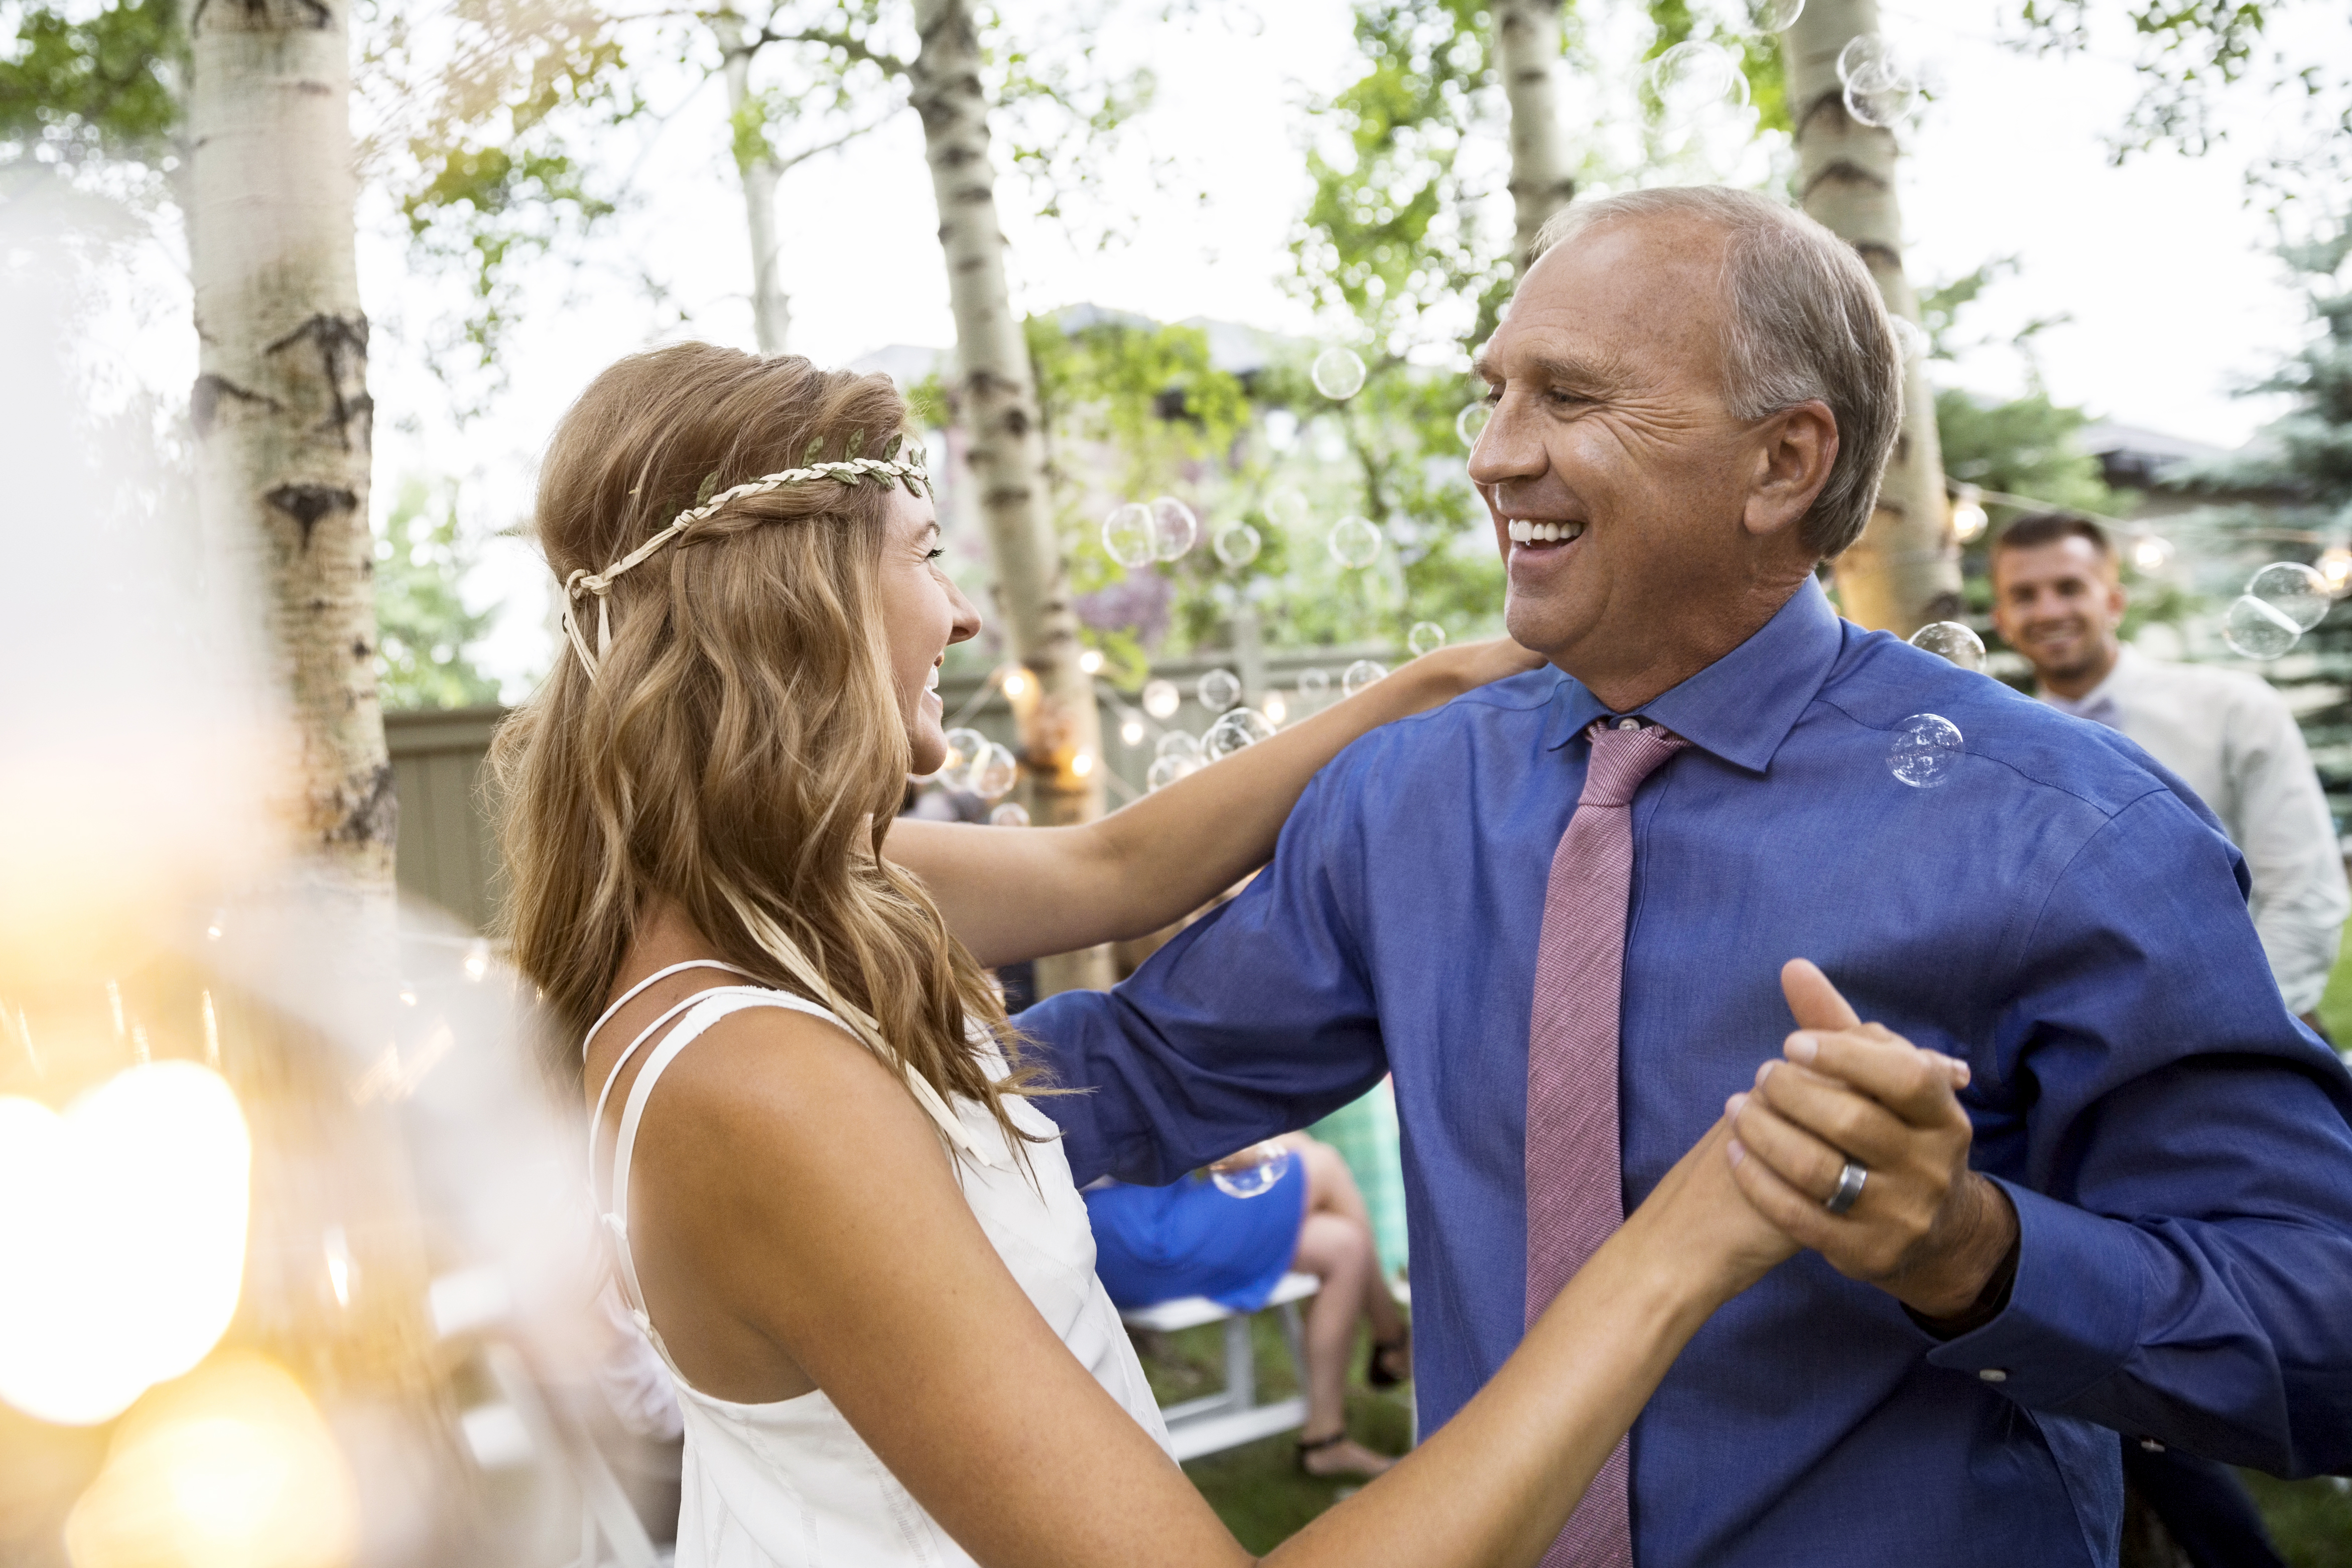 Best Father Daughter Dance Songs Lovetoknow,Pictures Of Ducks In Michigan